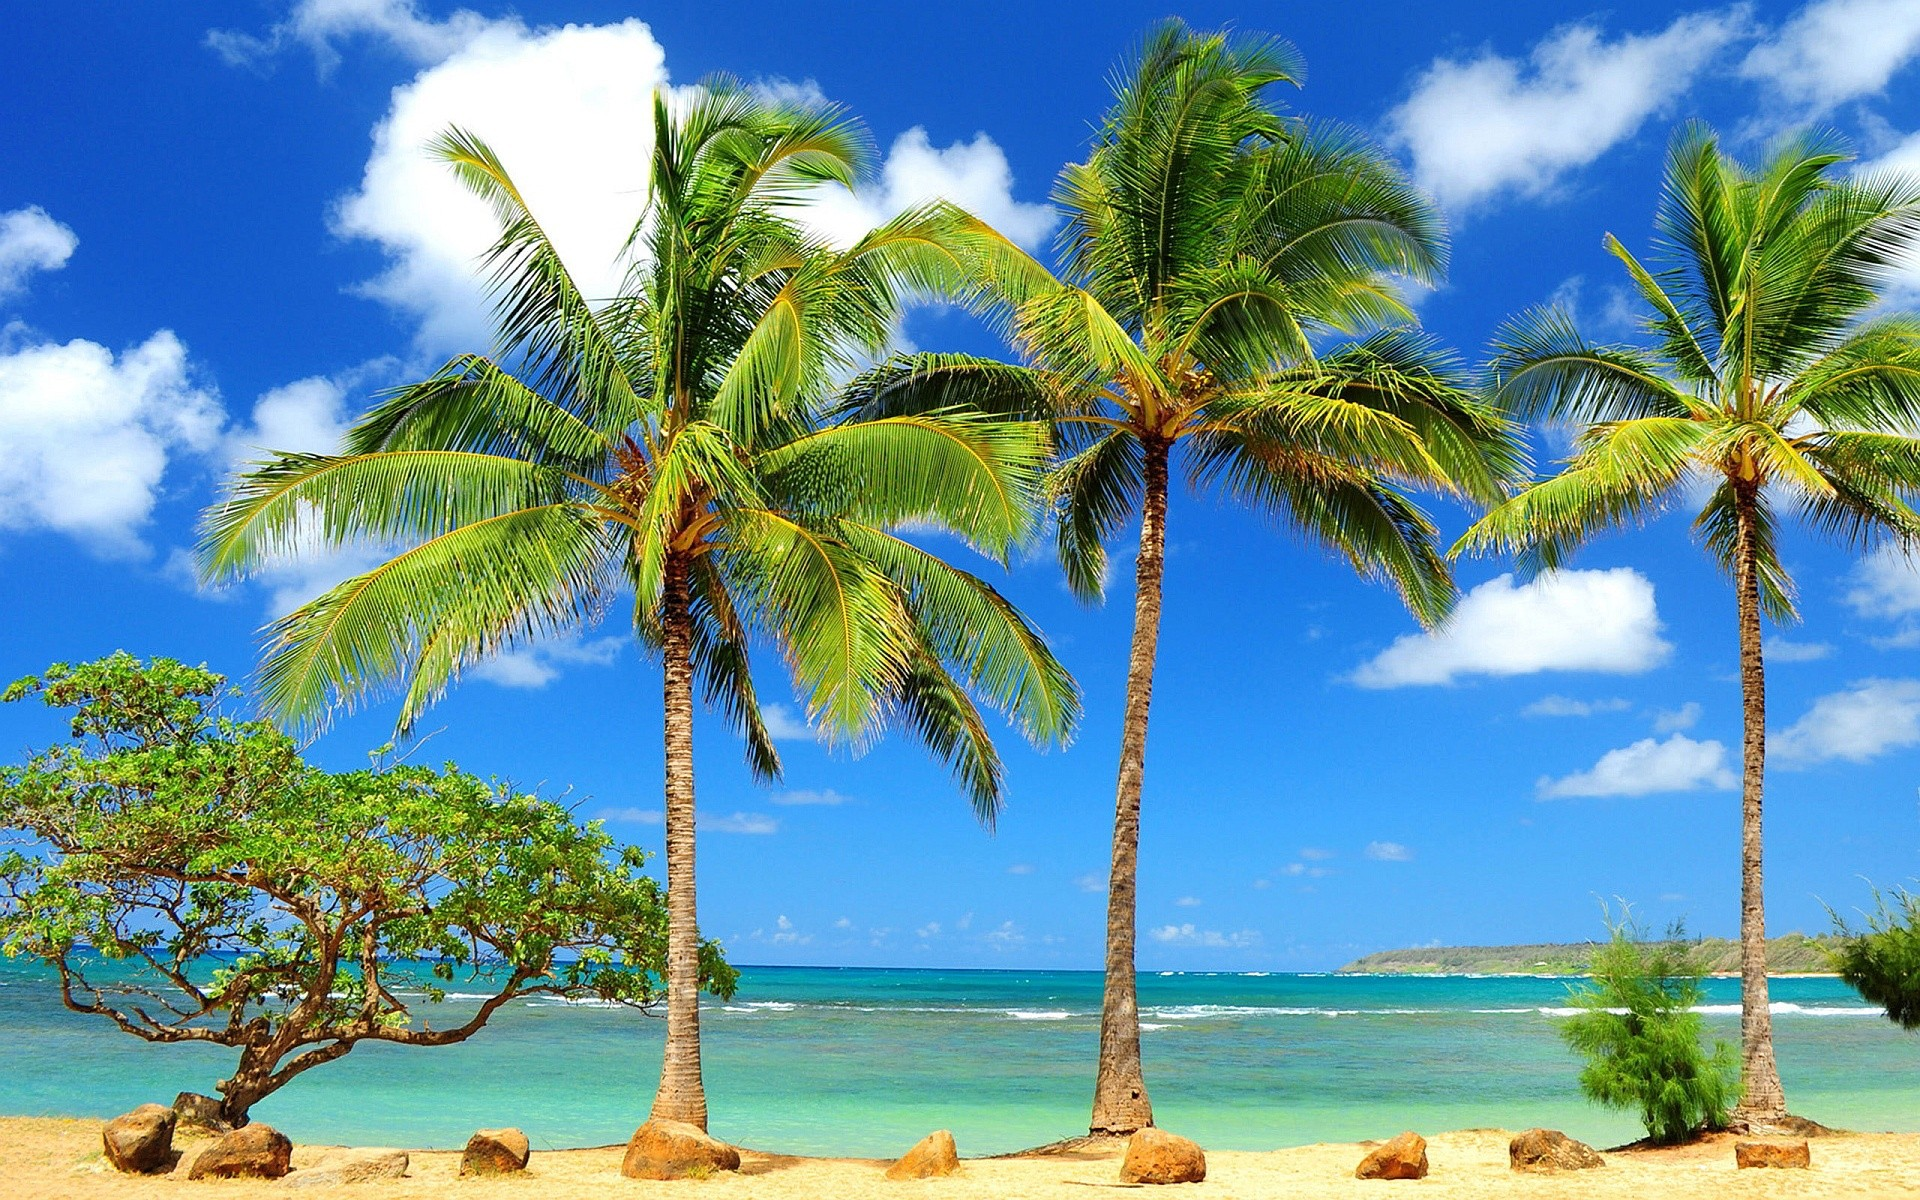 Palm Tree wallpaper ·① Download free HD wallpapers for ...